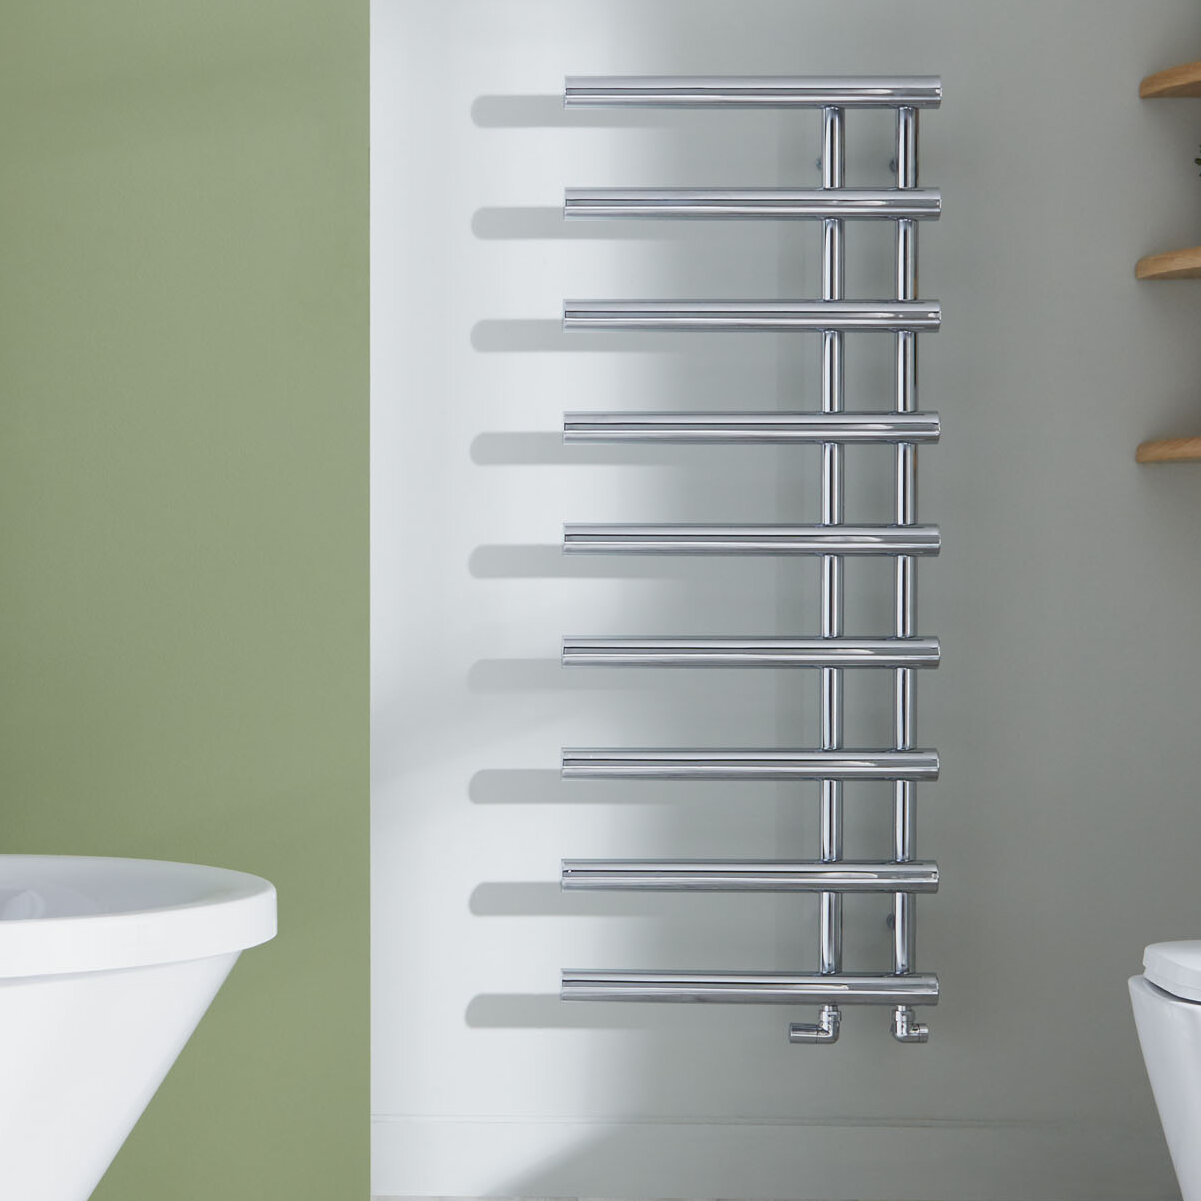 Belfry Heating Mayfair Wall-Mounted Heated Towel Rail | Wayfair.co.uk